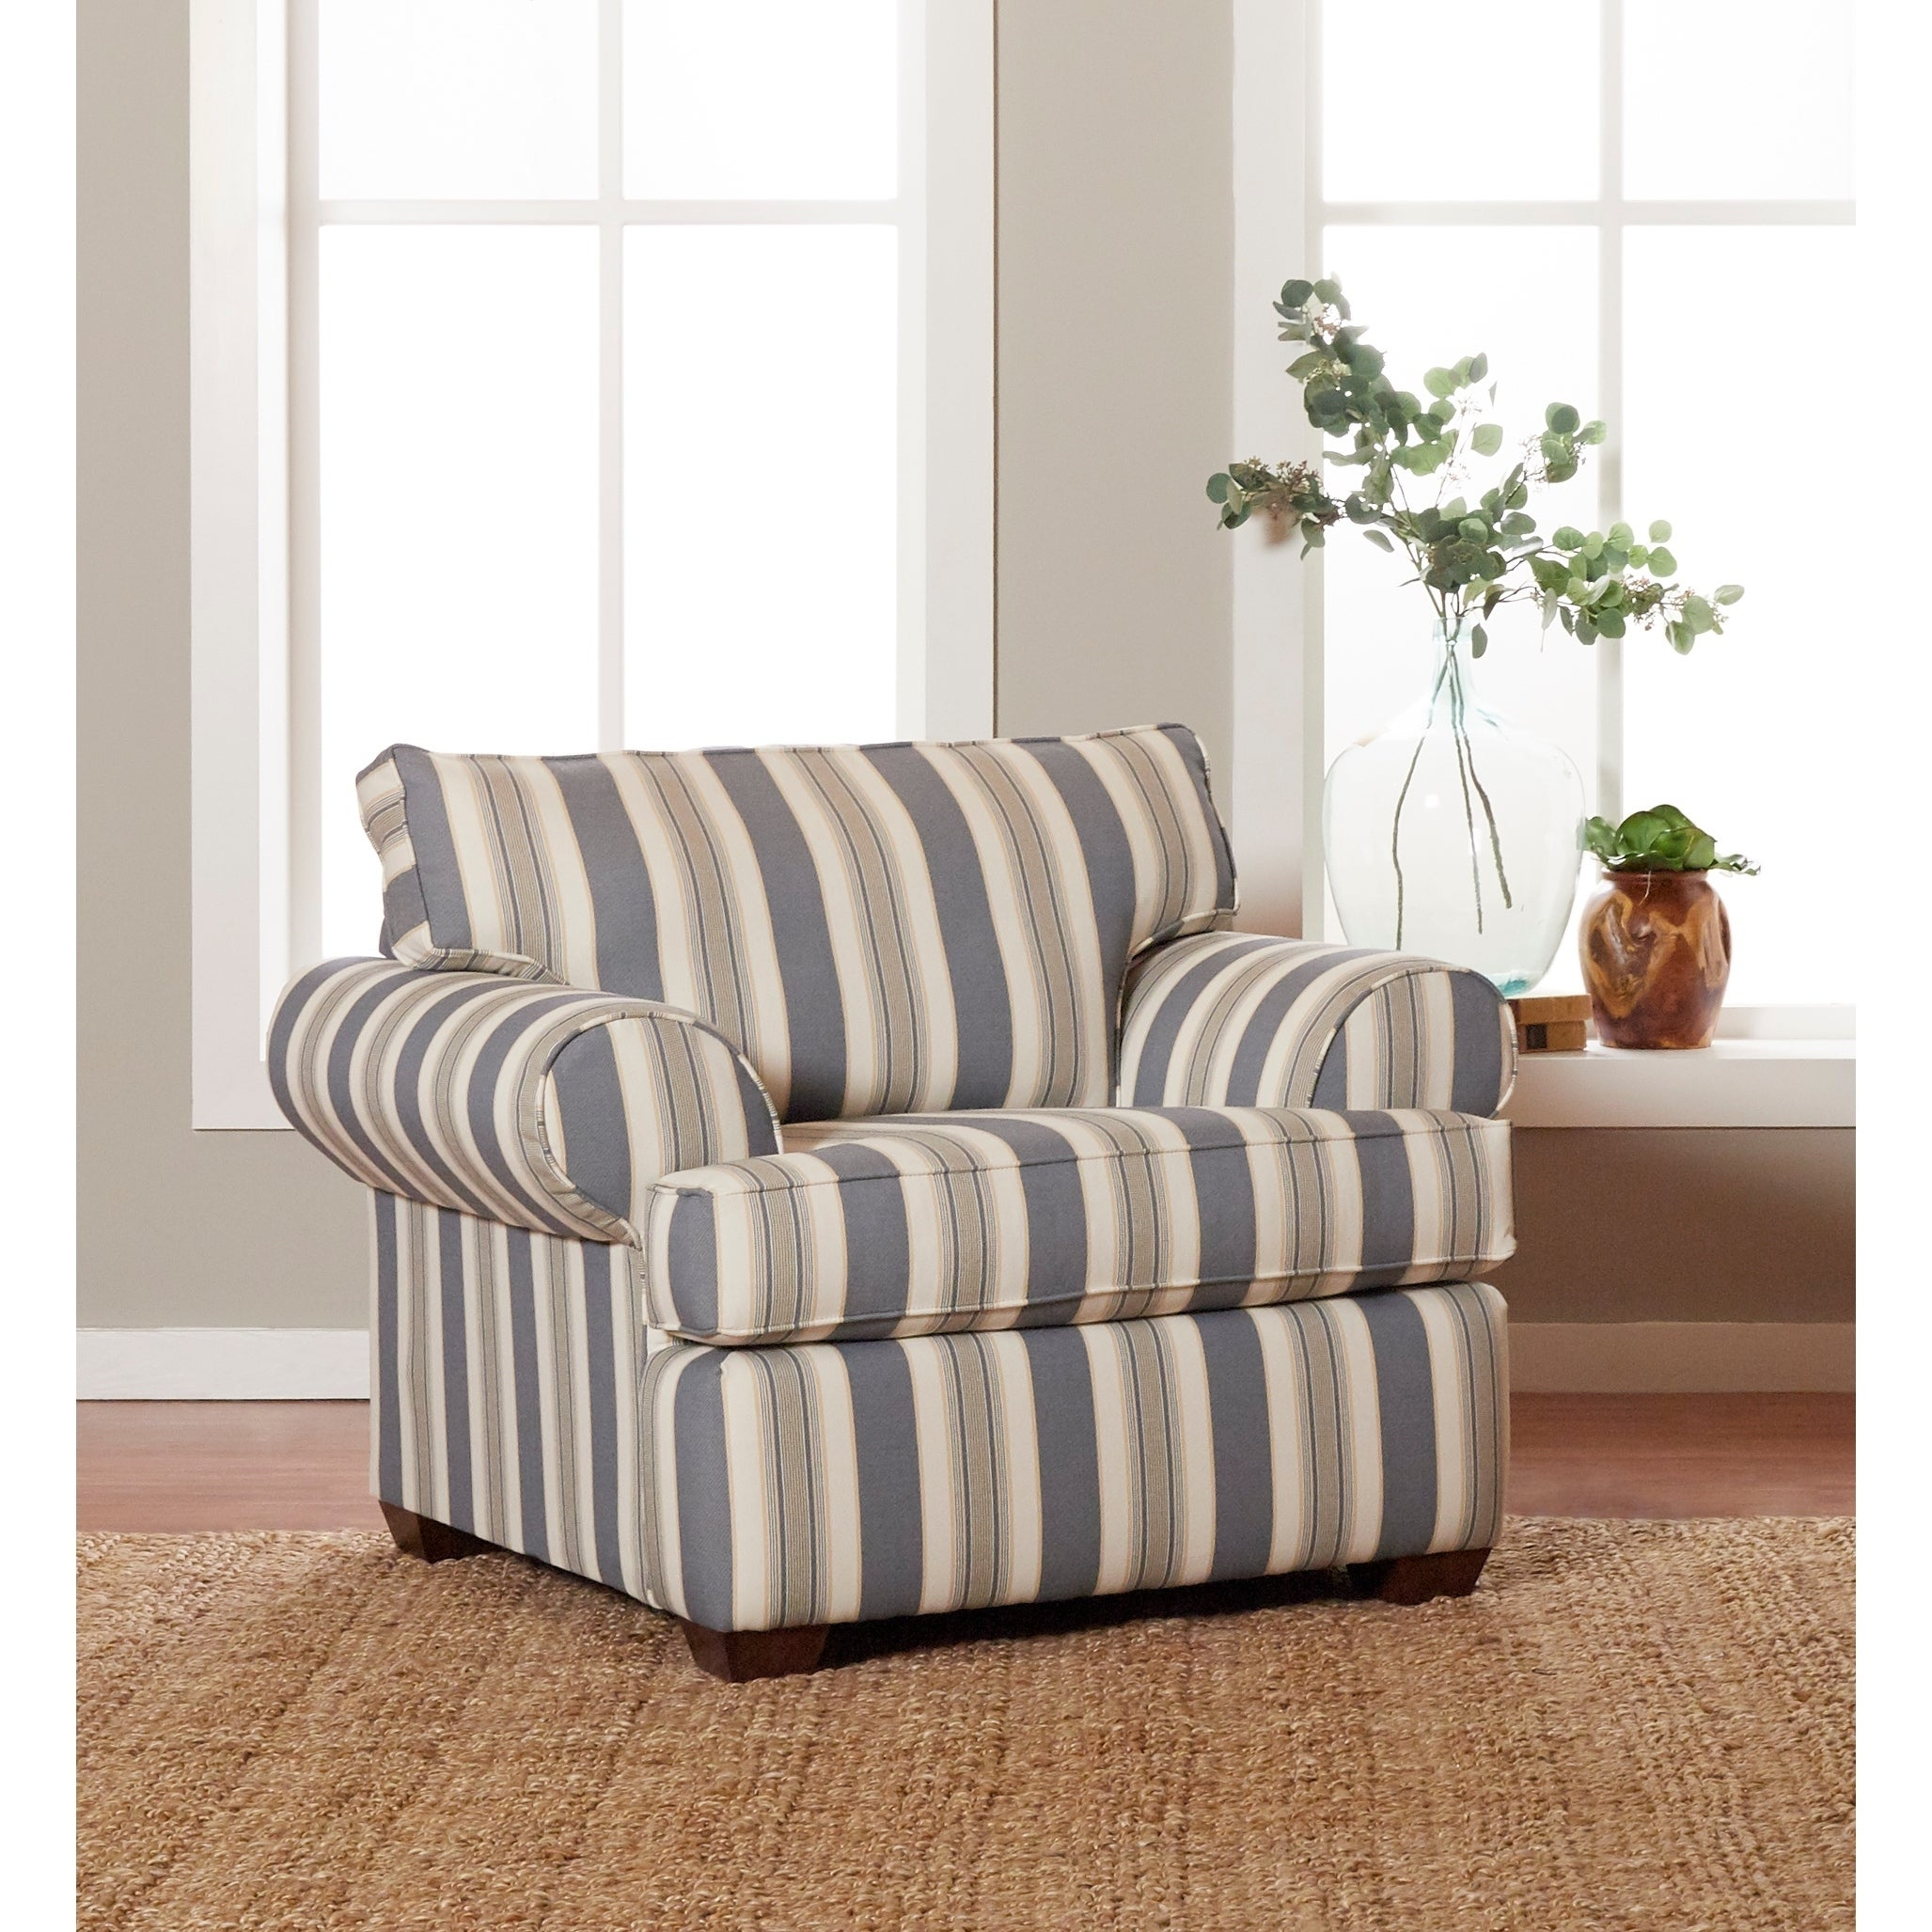 Shop Made To Order Lady Chair By Klaussner Furniture On Sale